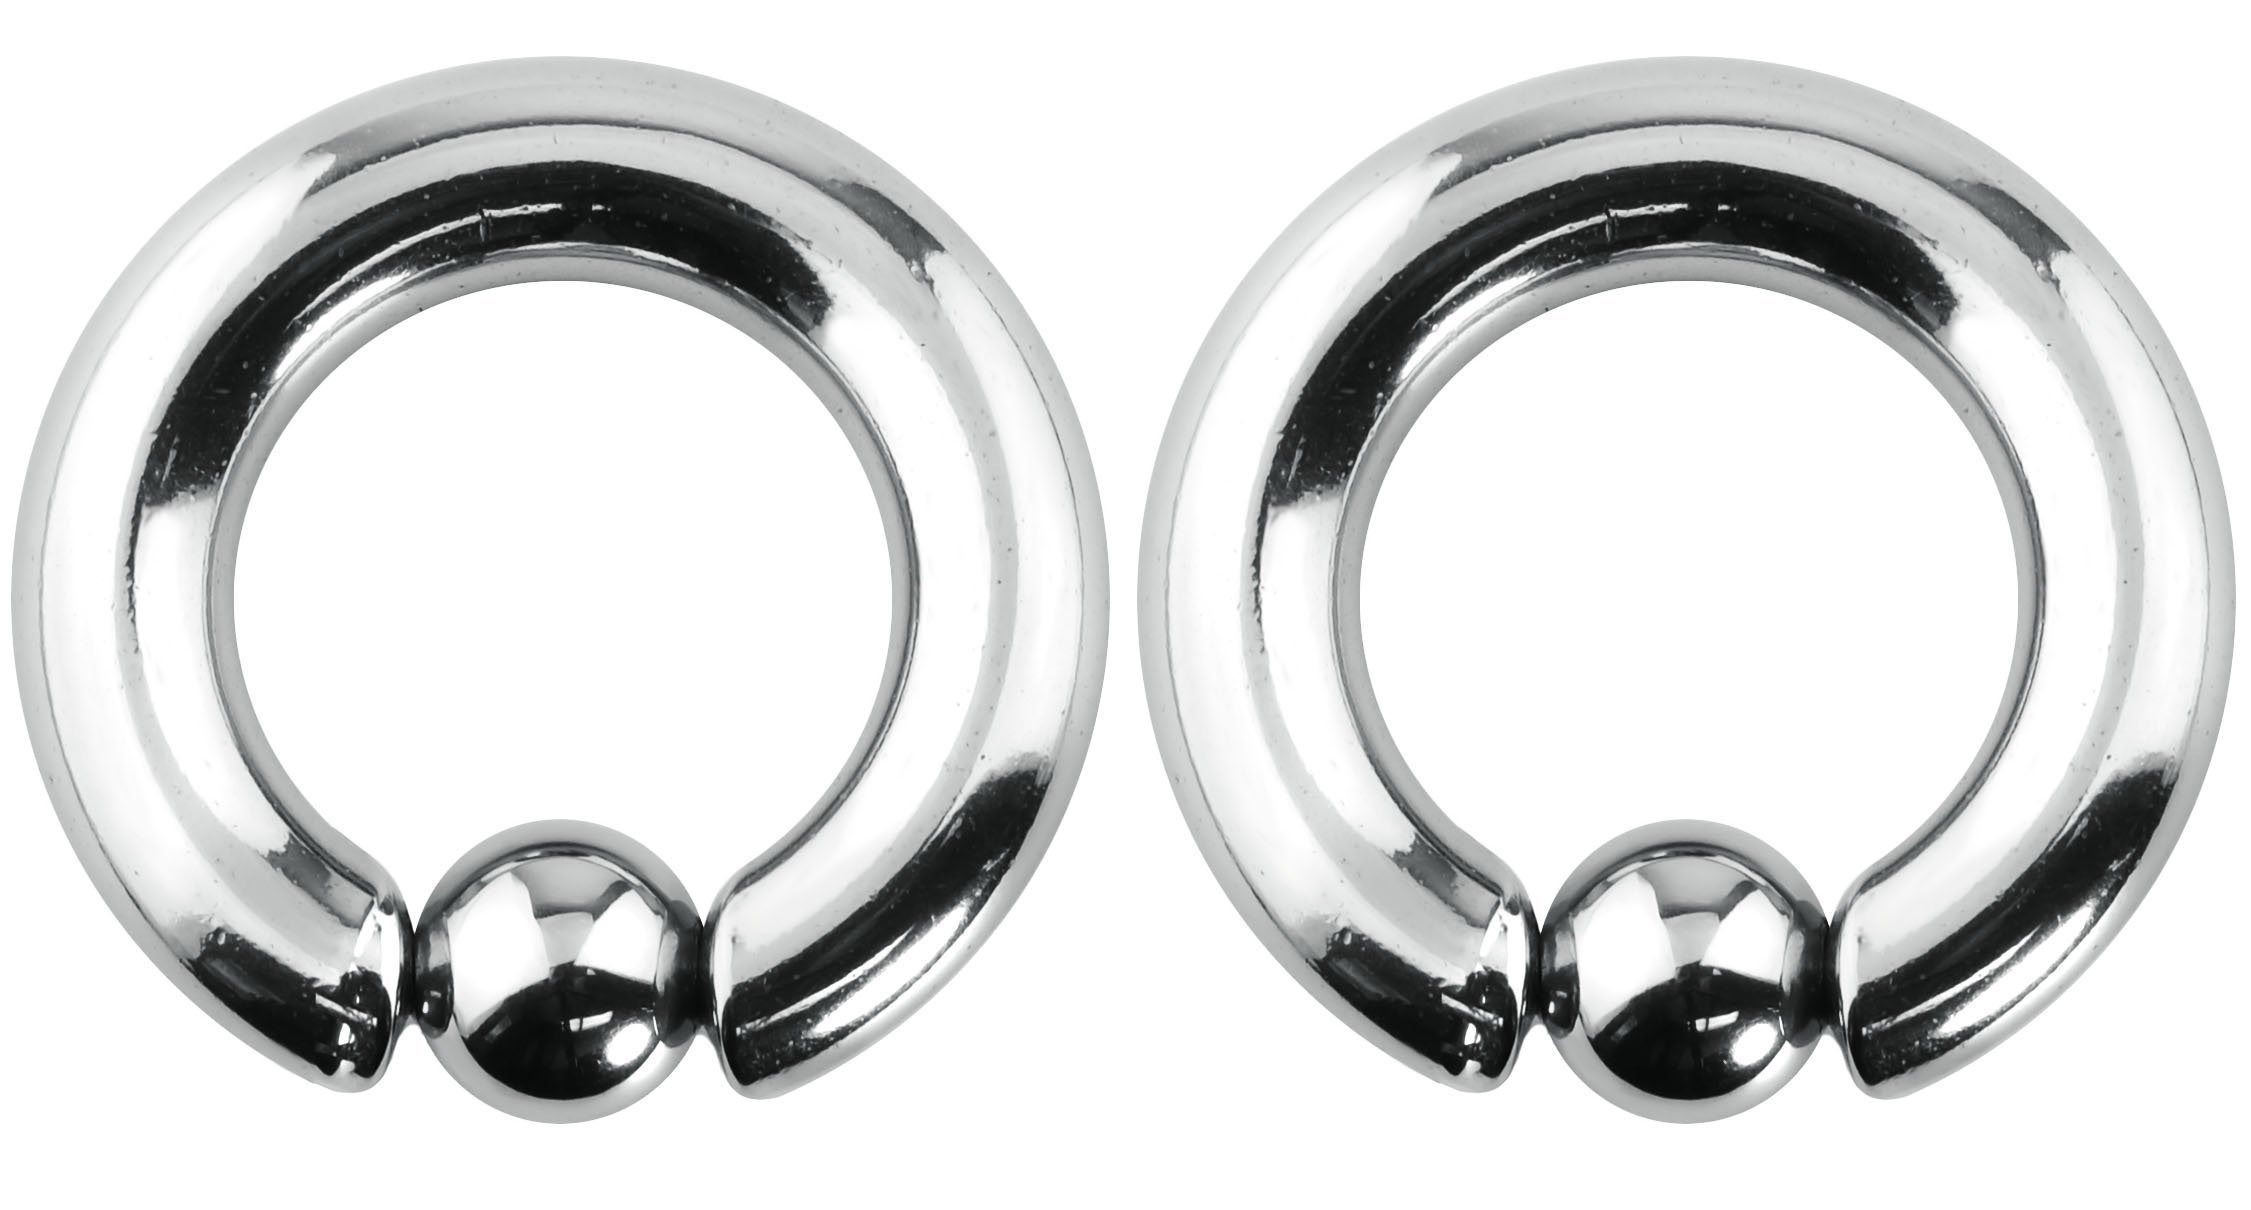 Forbidden Body Jewelry Pair of 2g 16mm Surgical Steel Captive Bead Ring Body Piercing Hoops, 8mm Balls (2pcs)